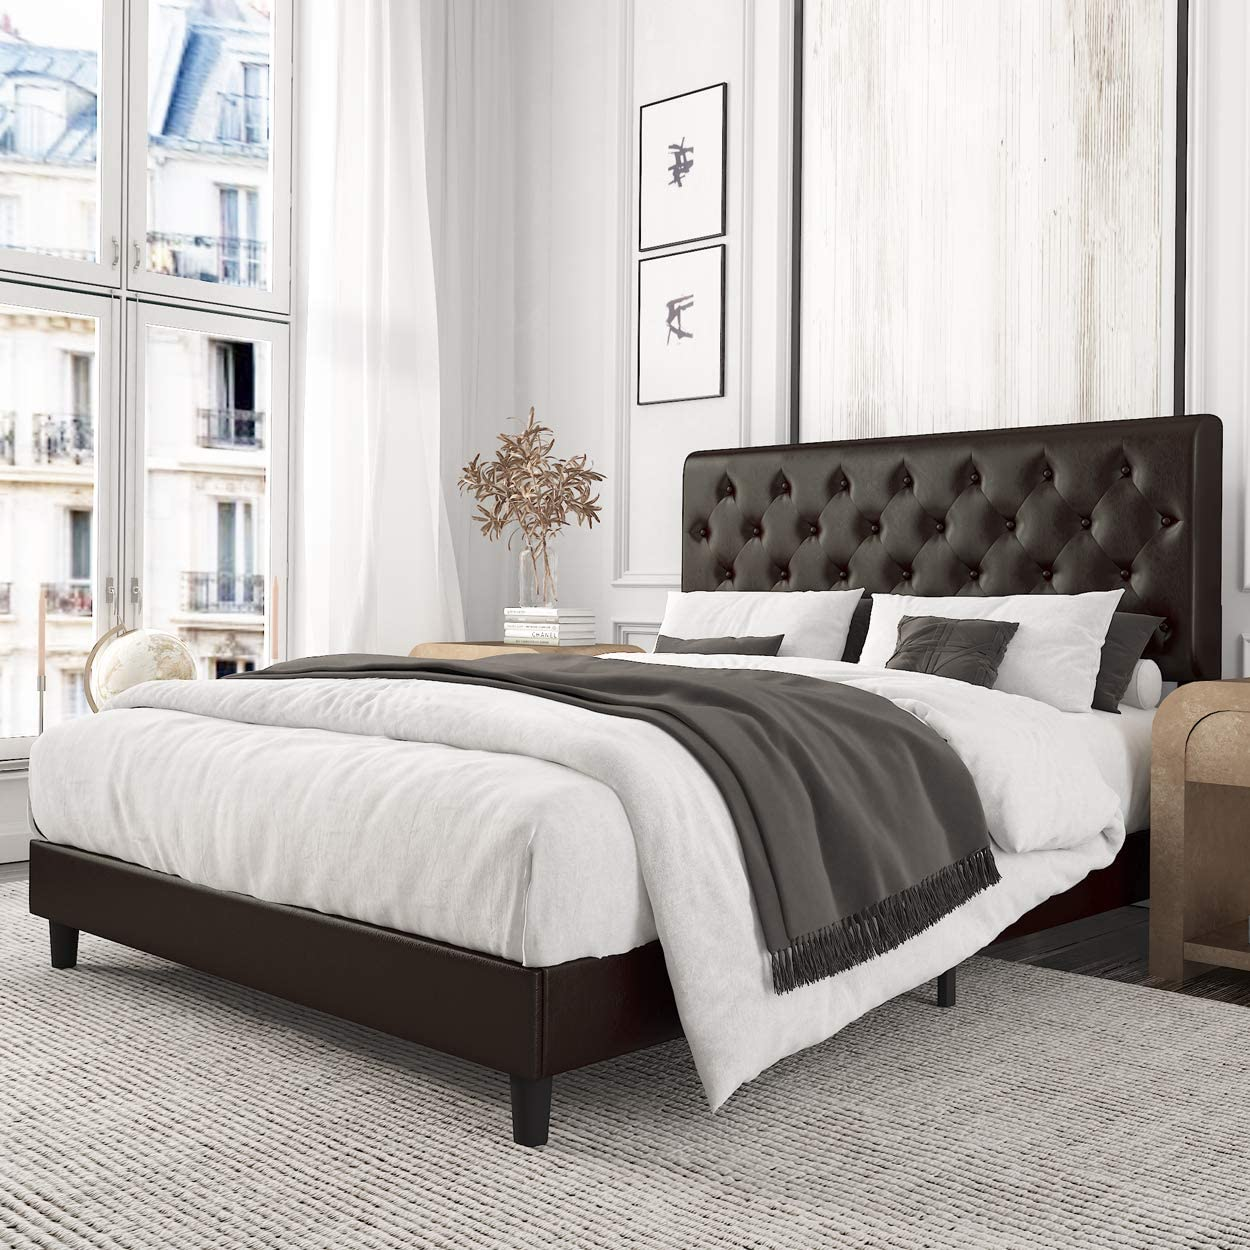 12 Cheap Full-Size Bed Frames That Look Expensive